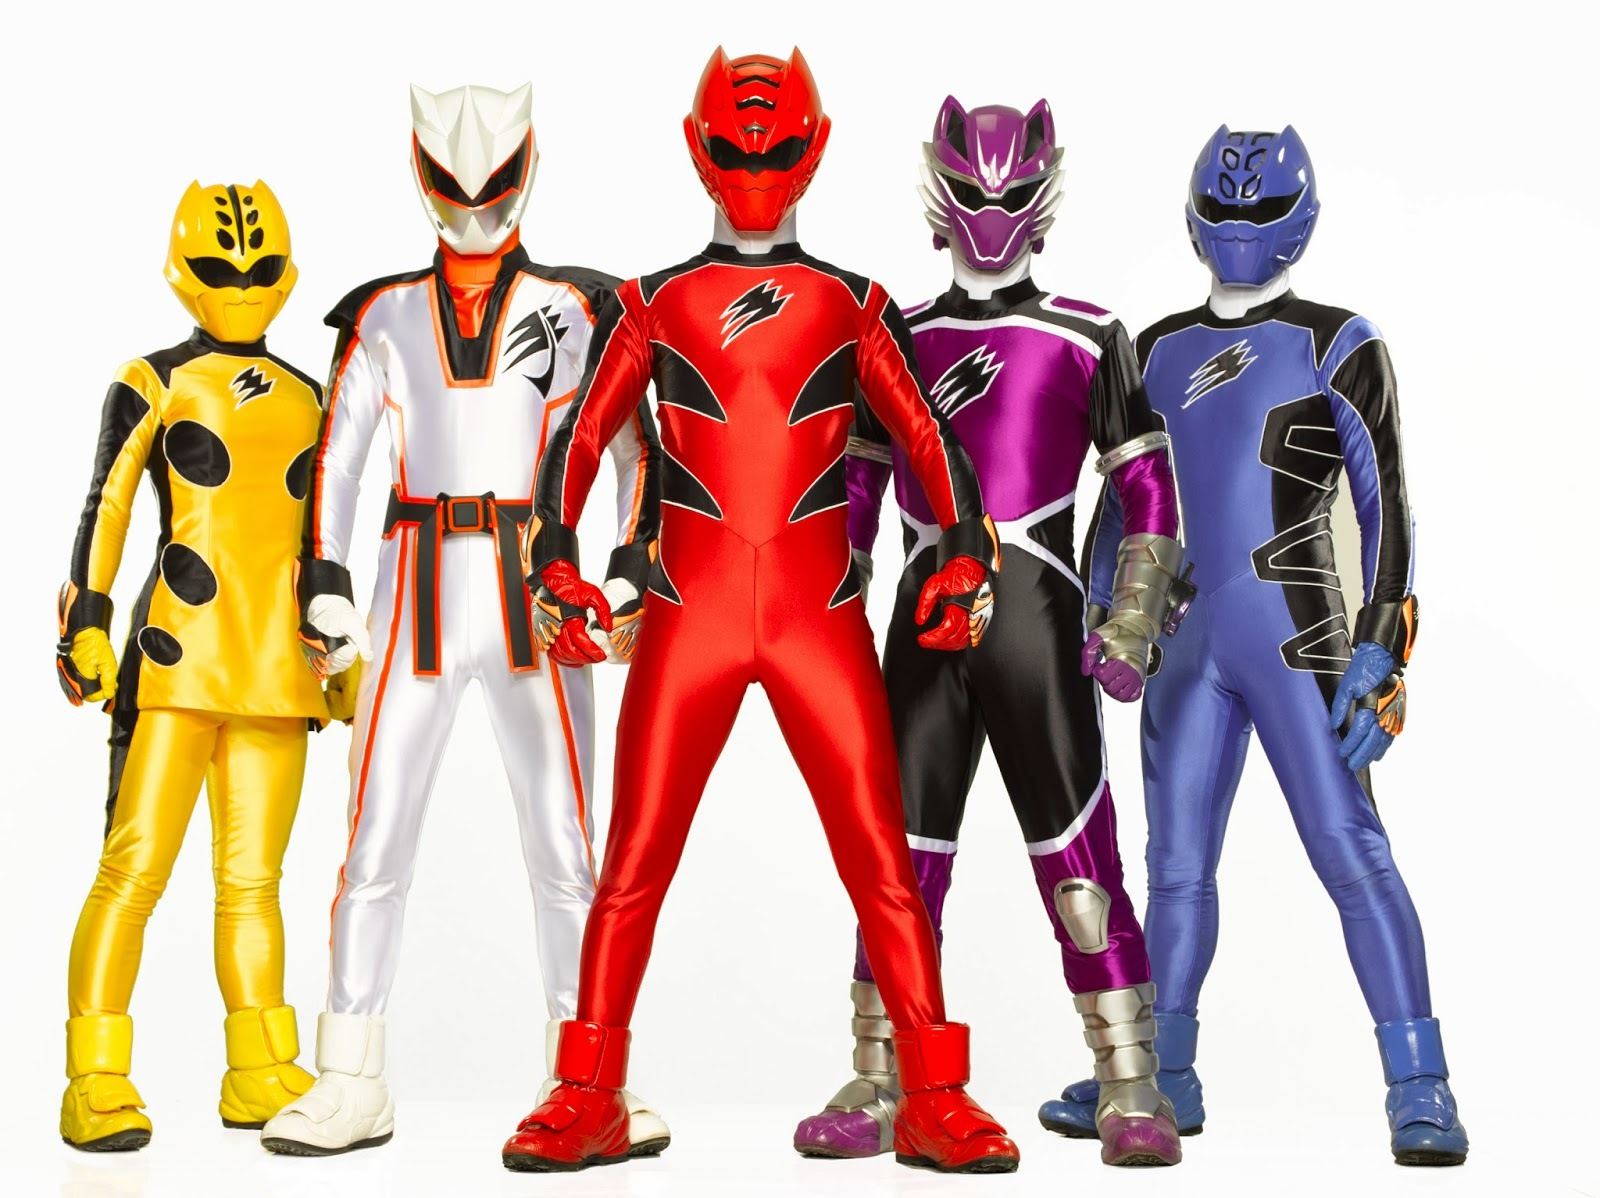 Ranking Every 'Power Rangers' Uniform, From Classic Series To Hipster Pirates